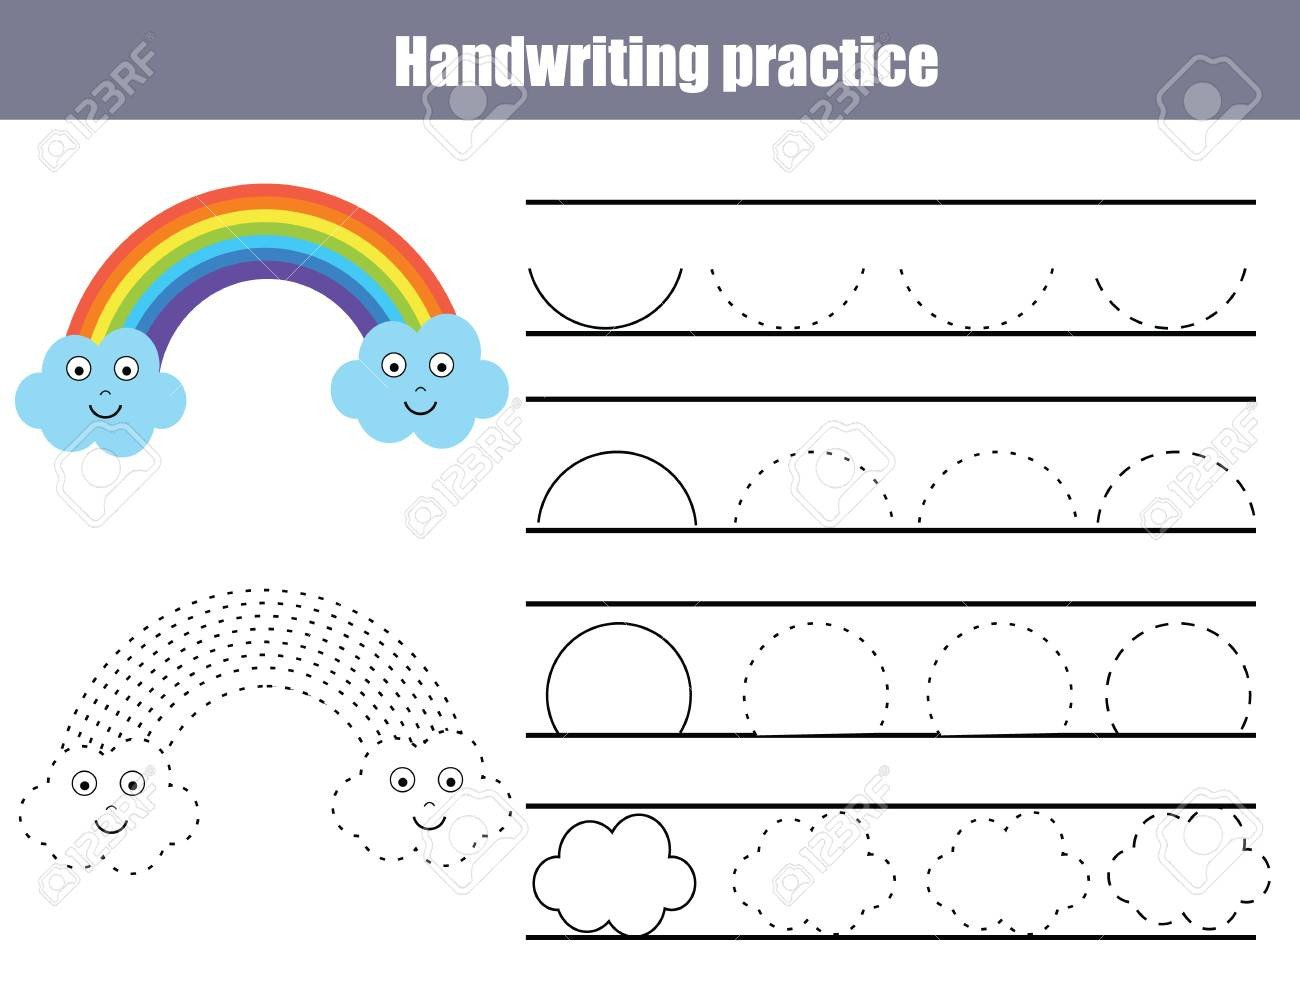 Rainbow Writing Worksheet Handwriting Practice Sheet Educational Children Game Printable